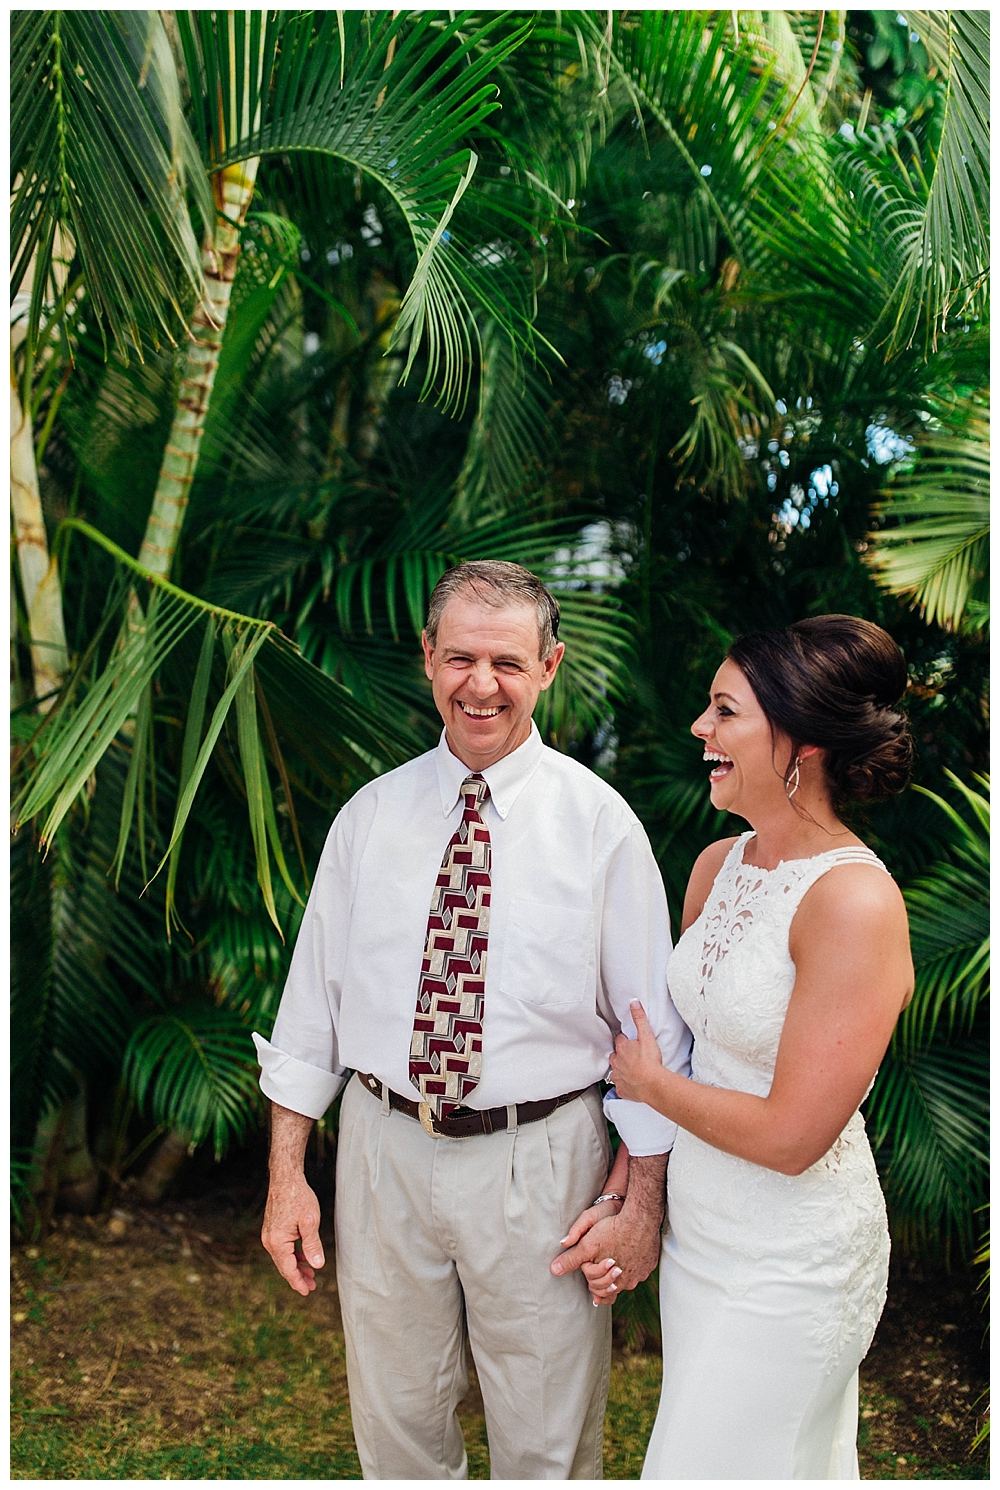 christinakarstphotography_dominicanrepublicwedding-163.jpg